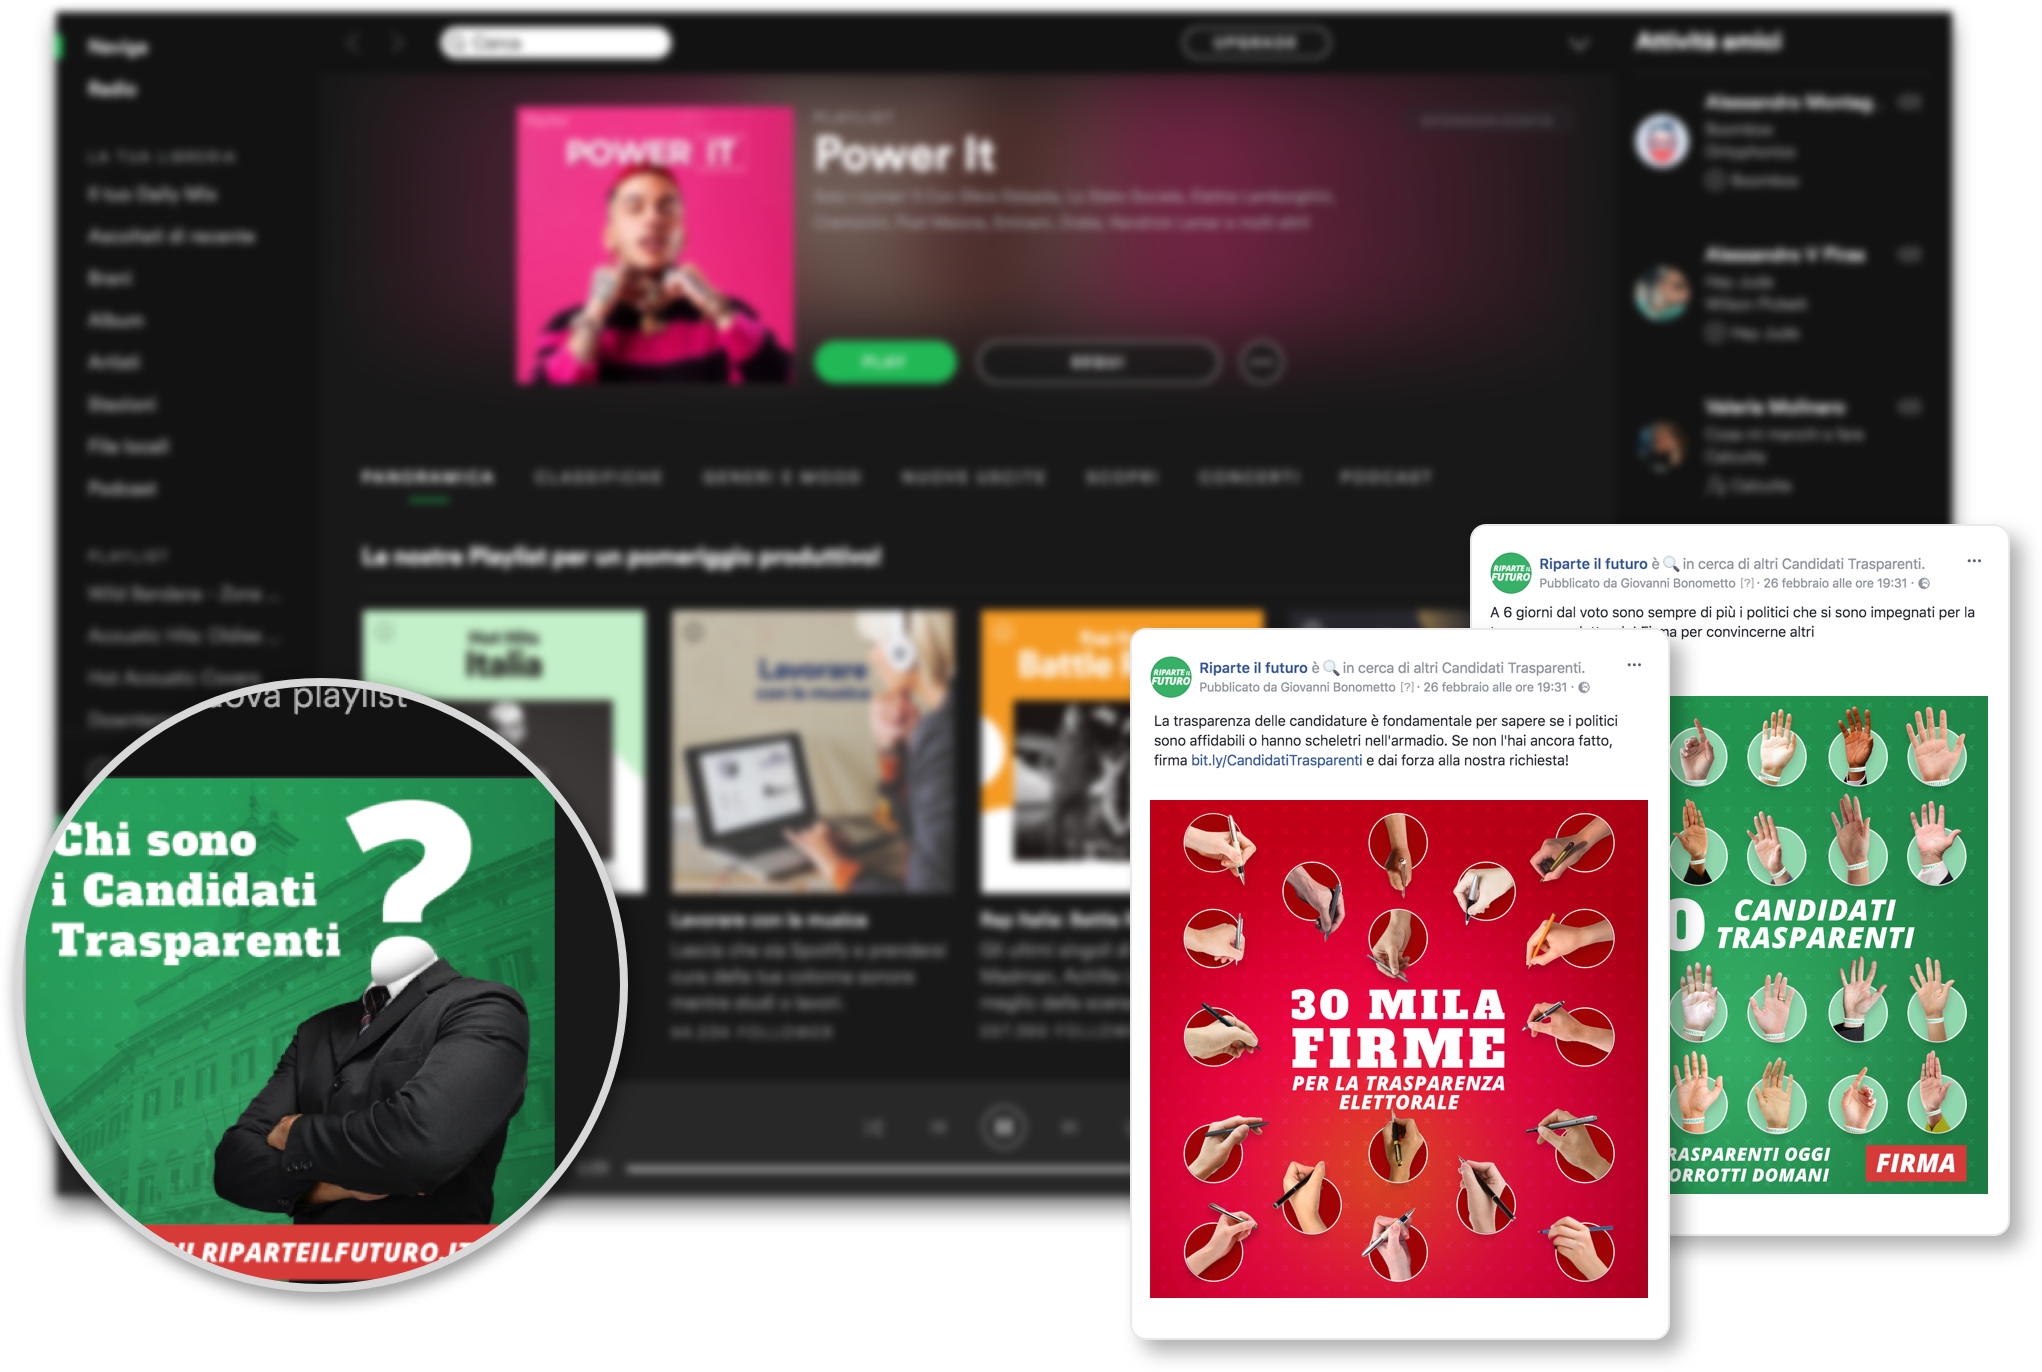 image of the adv on spotify and on social media